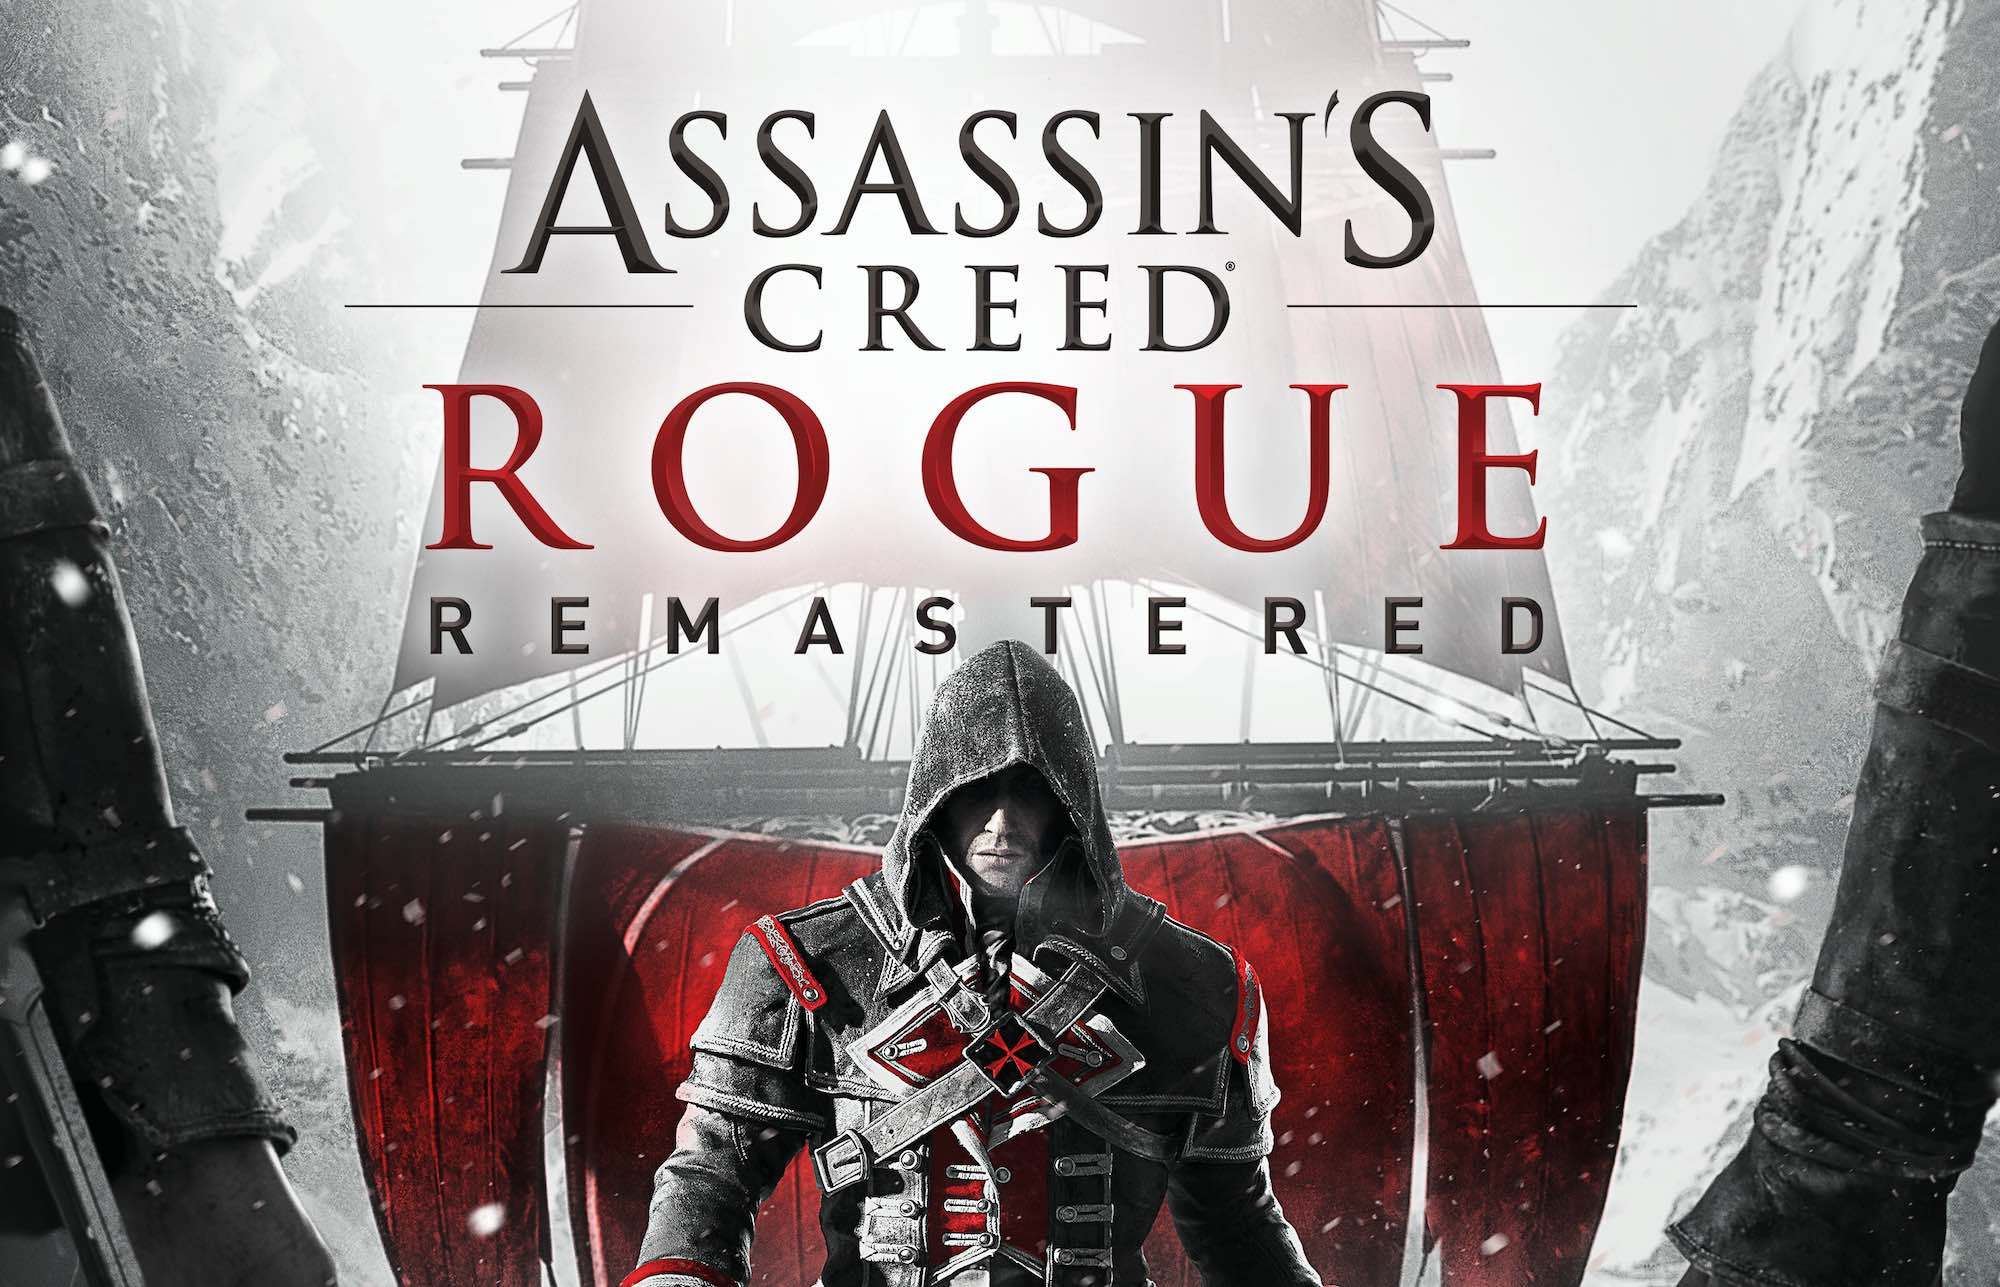 'Assassin's Creed Rogue' (ALL) Remastered For PS4 And Xbox One - Screens & Trailer